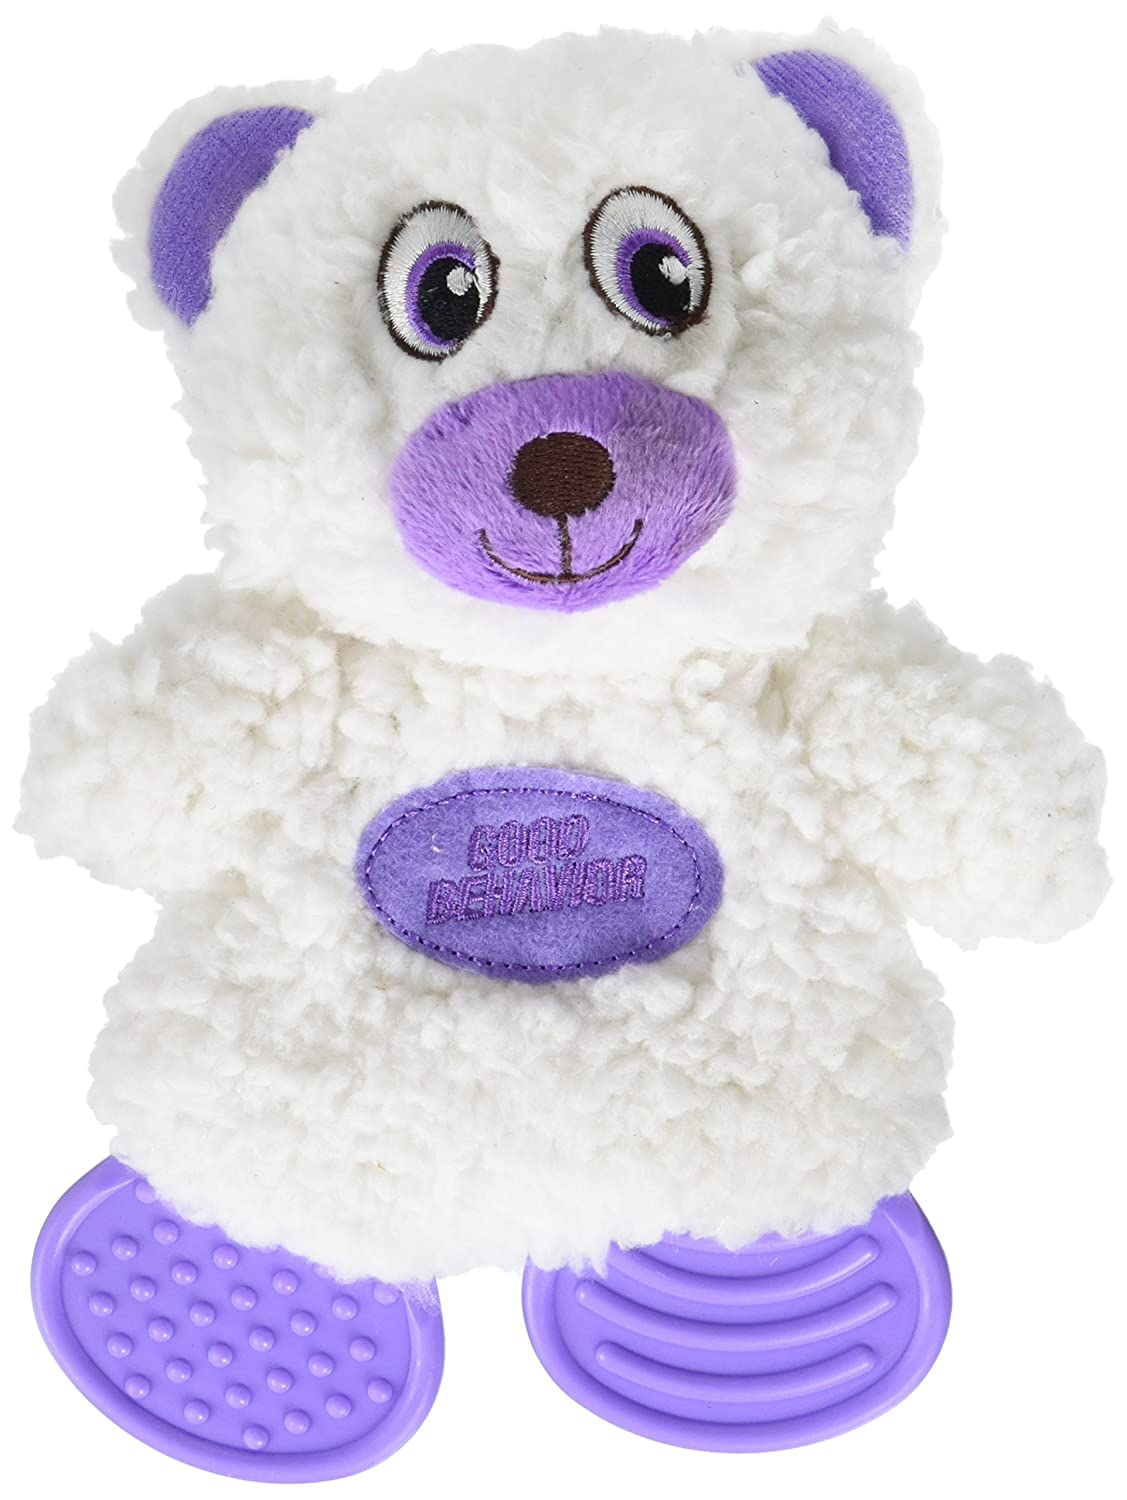 Fiproguard Animal Supply Company IC49882 Good Behavior Bedtime Bear Toy